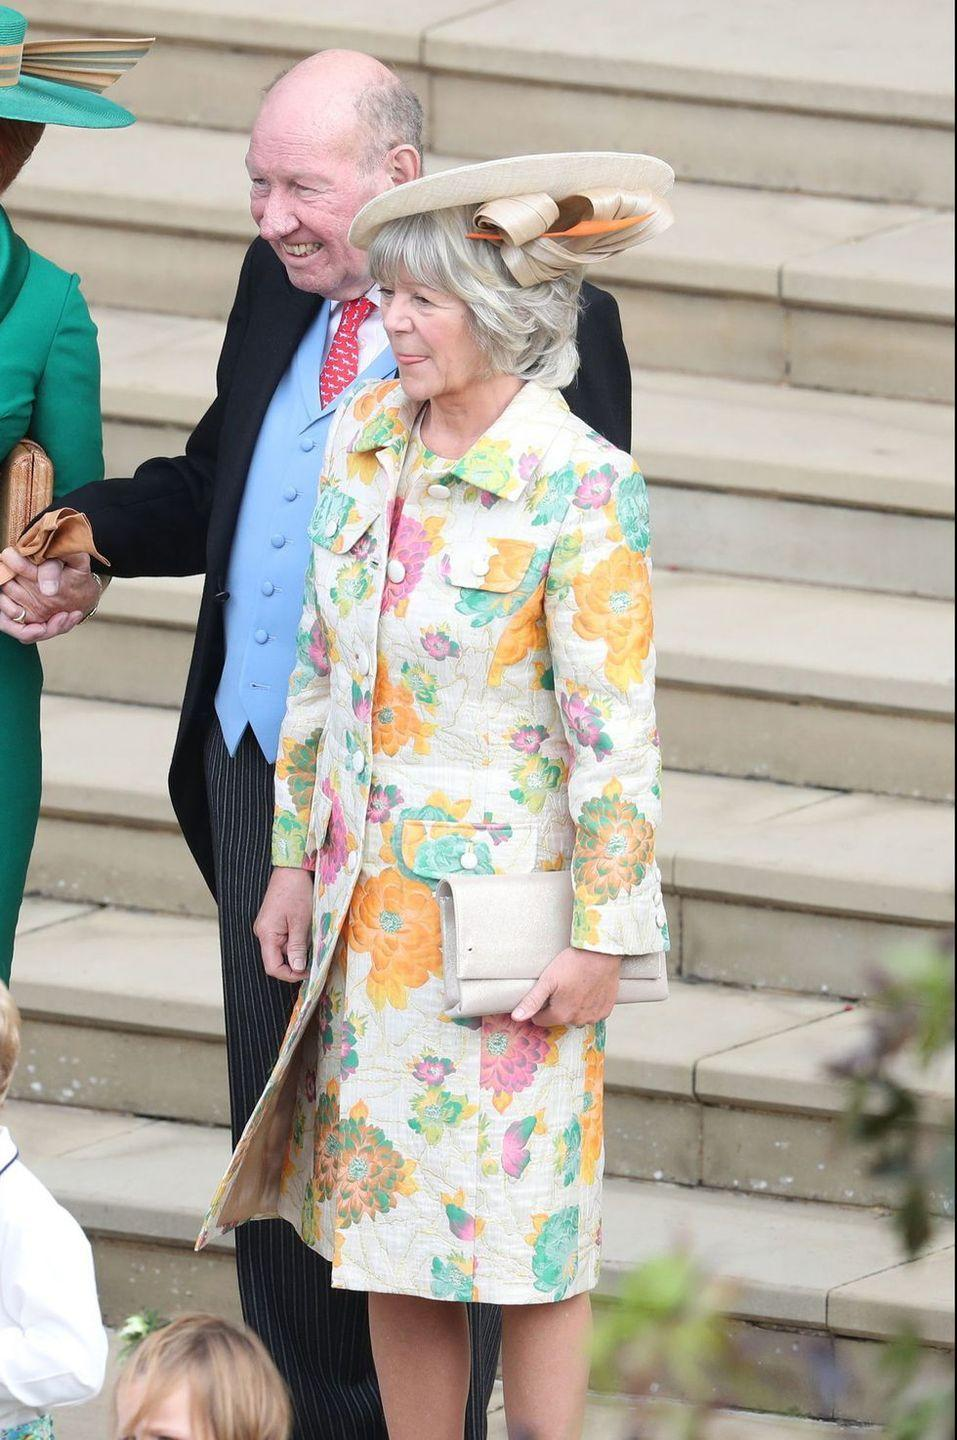 <p>Nicola Brooksbank, the mother of the groom, wore a simple yet festive hat to coordinate with her floral coat and dress.</p>